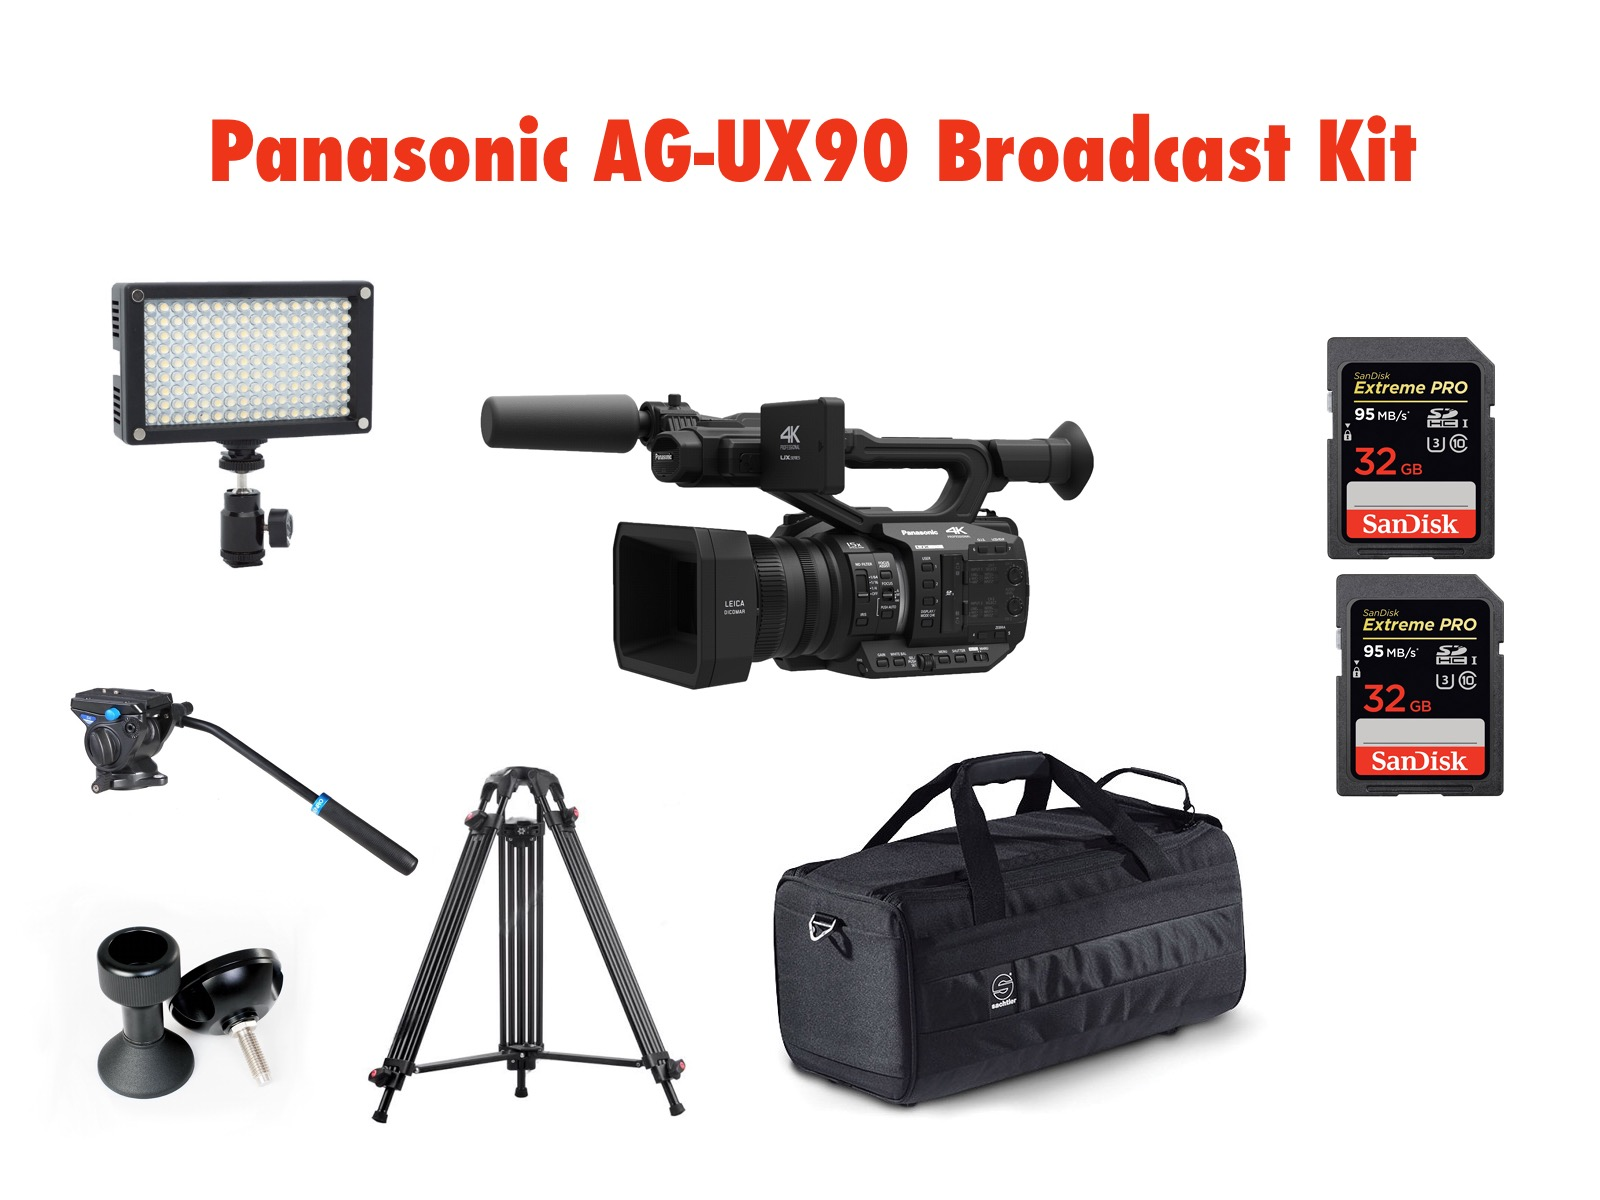 PANASONIC AG-UX90 BROADCAST KIT 2